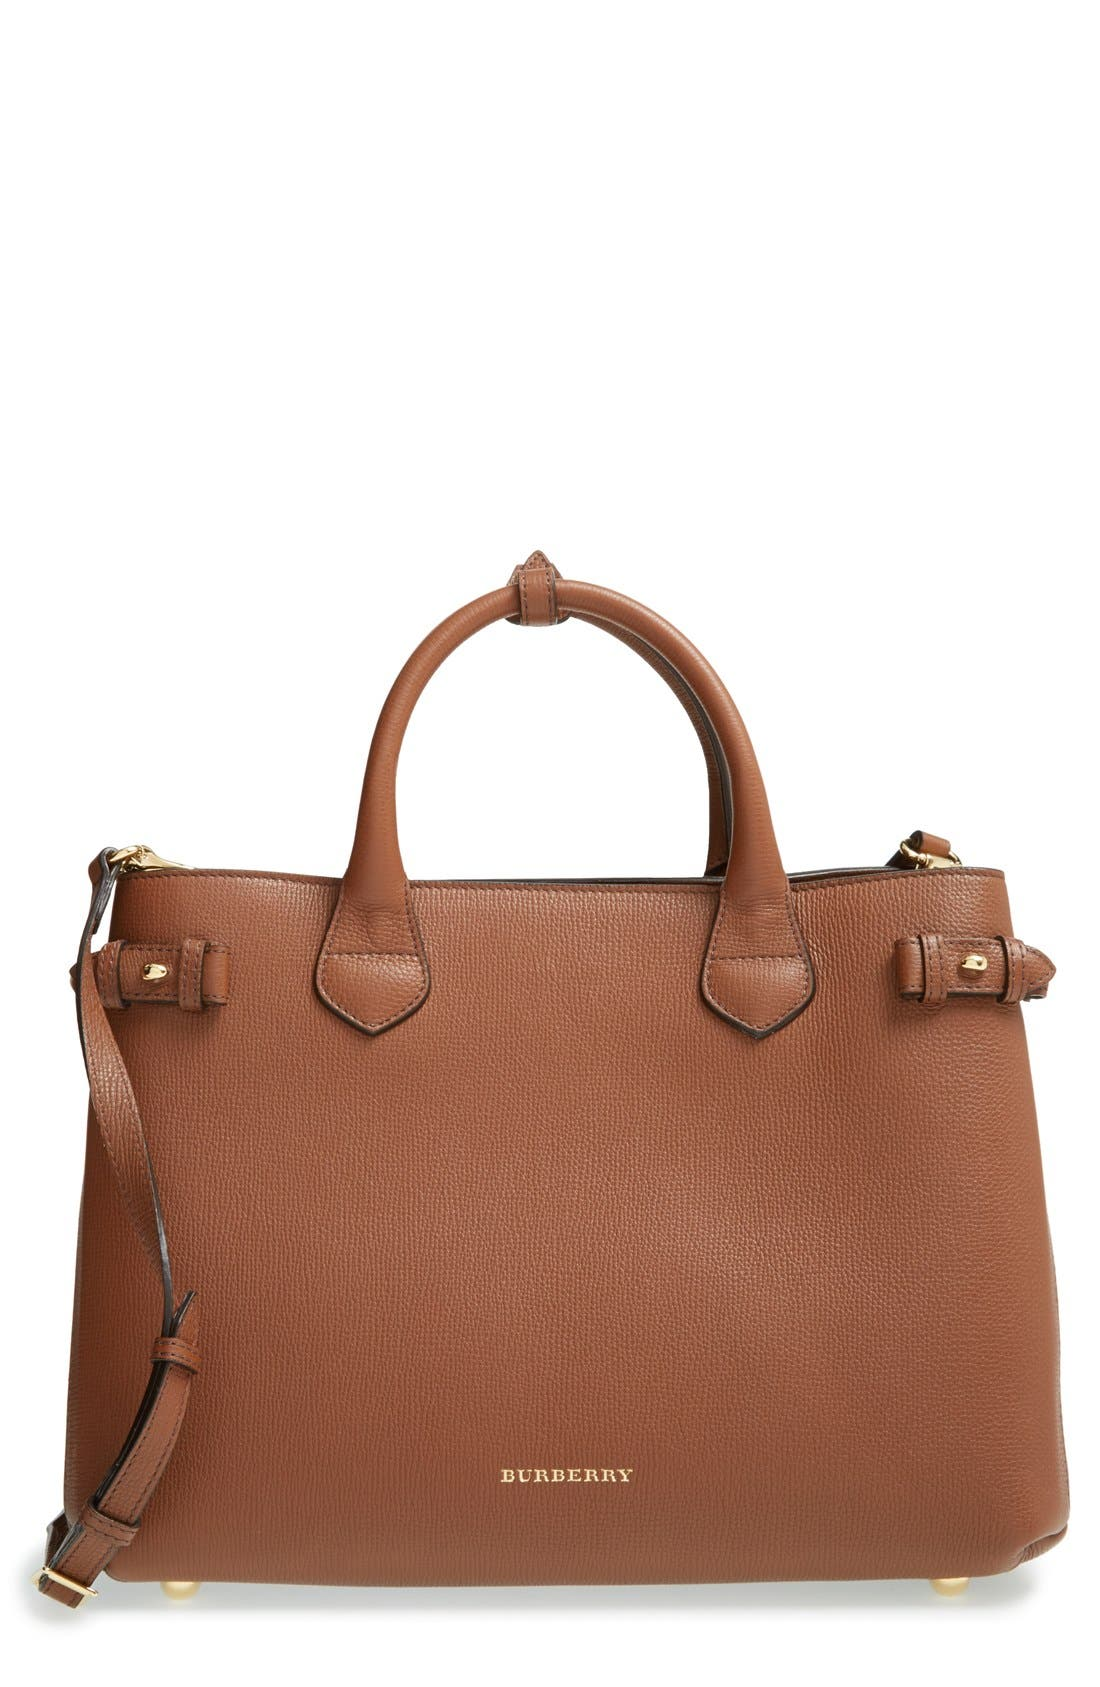 Alternate Image 1 Selected - Burberry Medium Banner Leather Tote